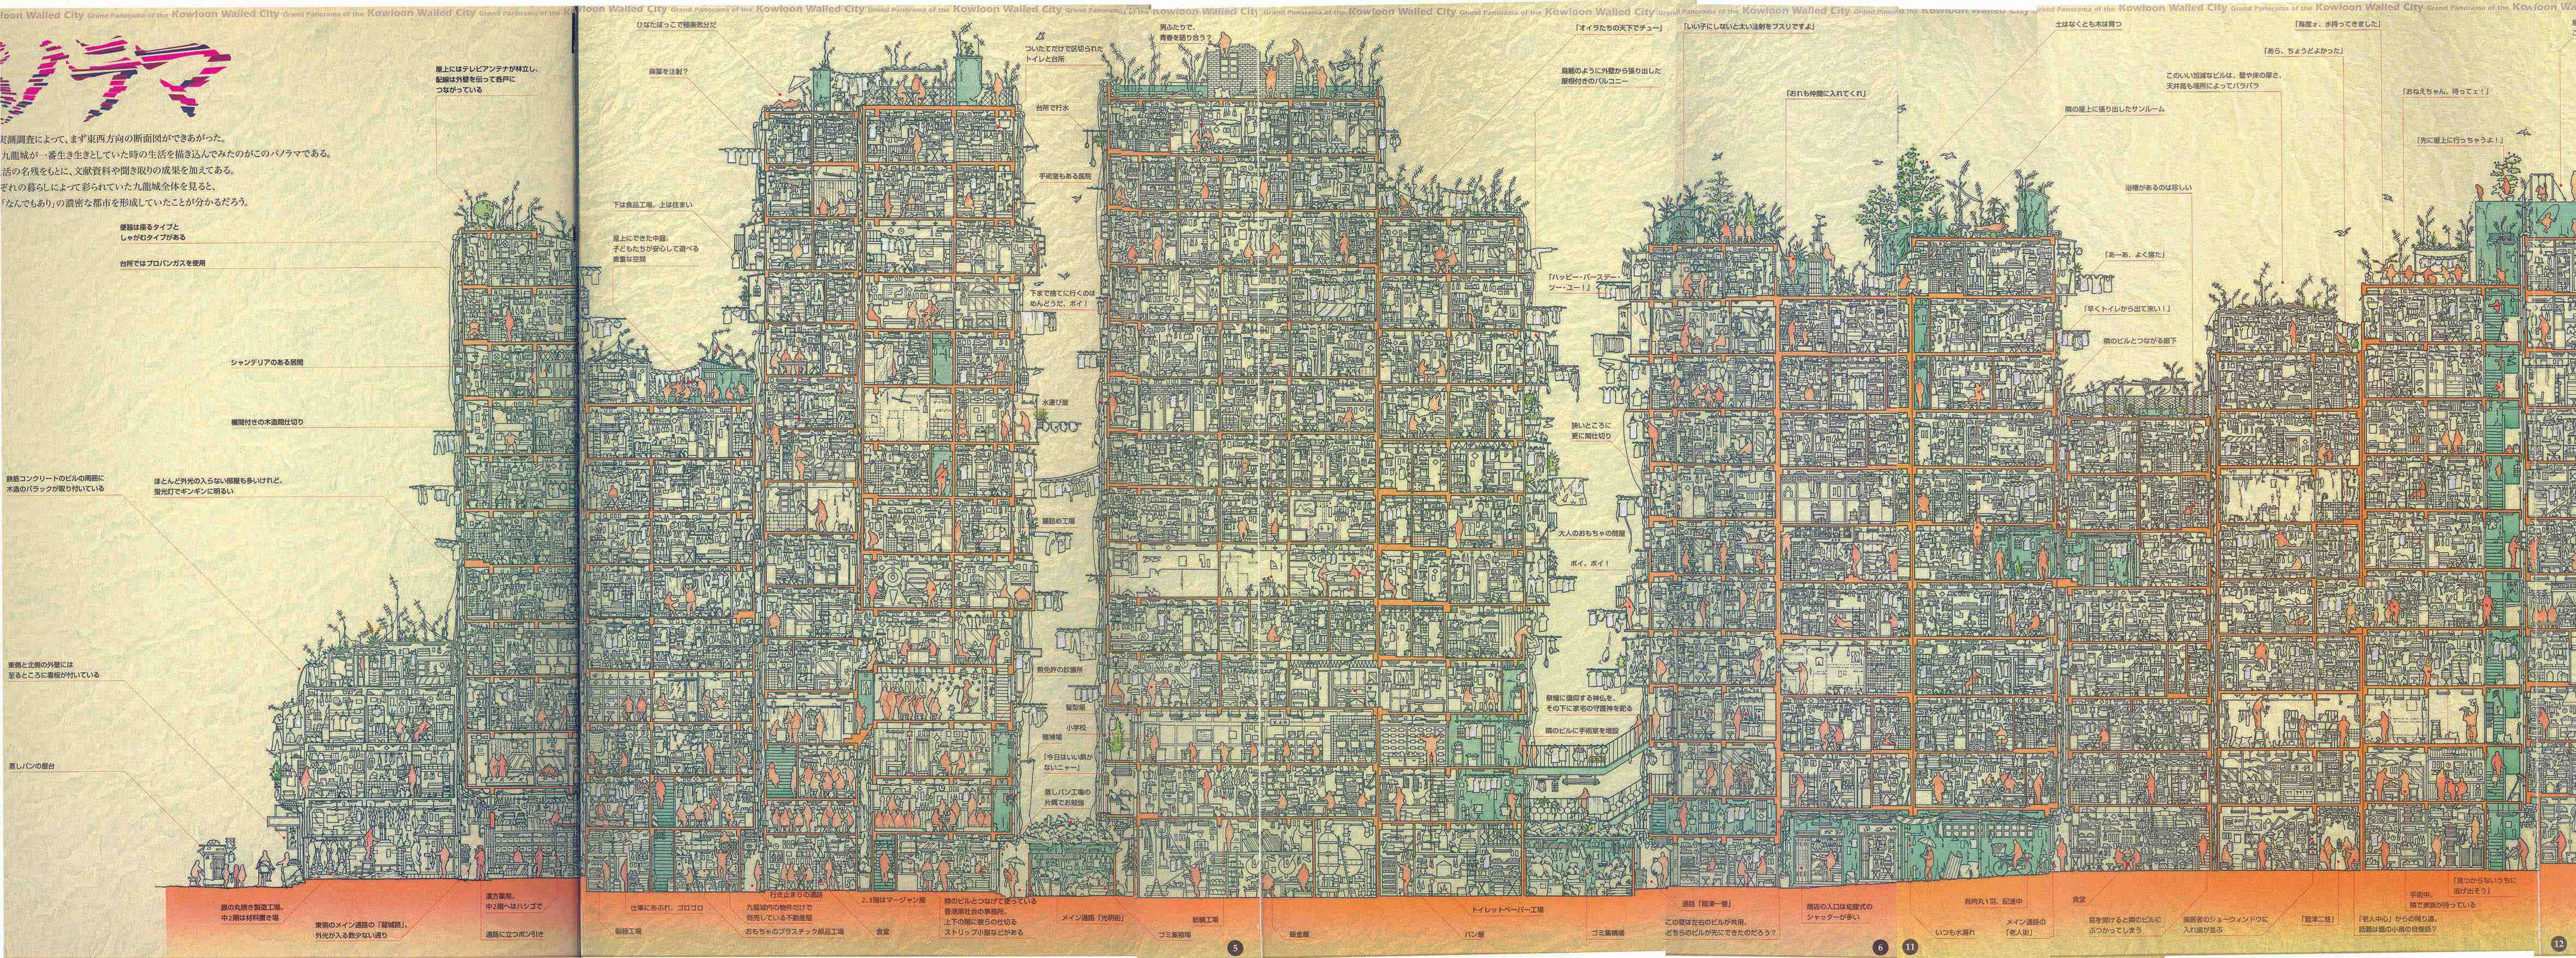 Kowloon-Cross-section-low.jpg